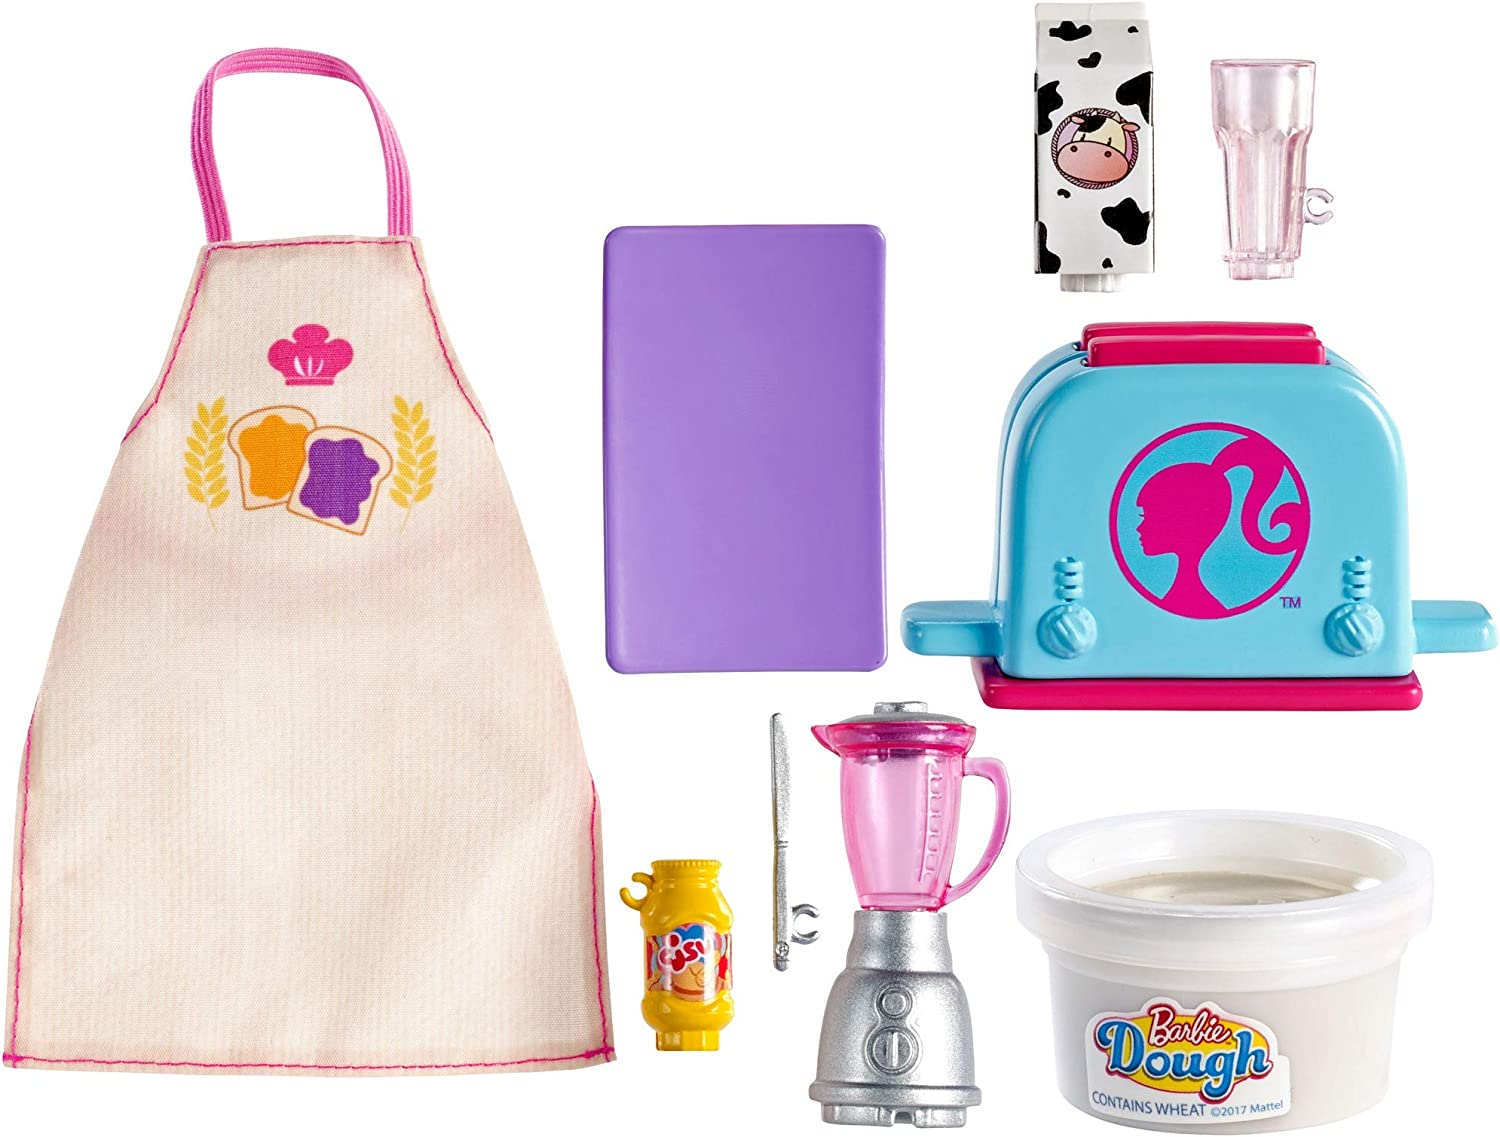 Barbie Cooking & Baking Accessory Pack with Breakfast-Themed Pieces, Including Apron for Doll, Toaster Mold & Container of Molded Dough, Ages 4 Years Old & Up, Multi